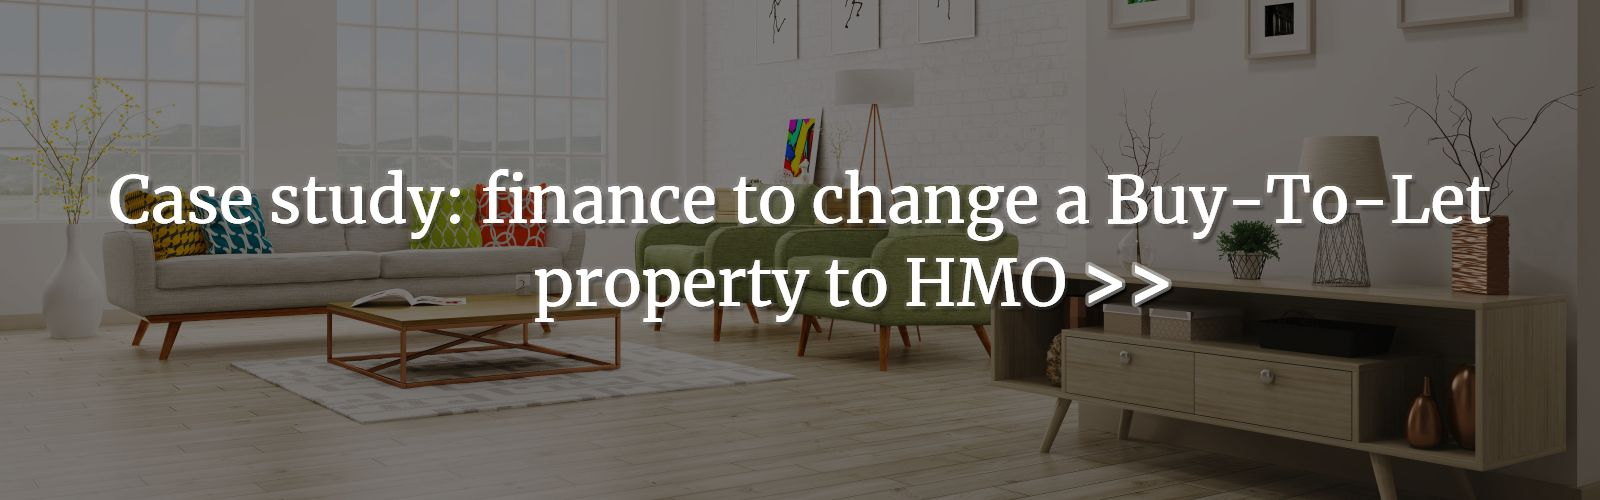 FINANCE-TO-CHANGE-BUY-TO-LET-PROPERTY-TO-HMO